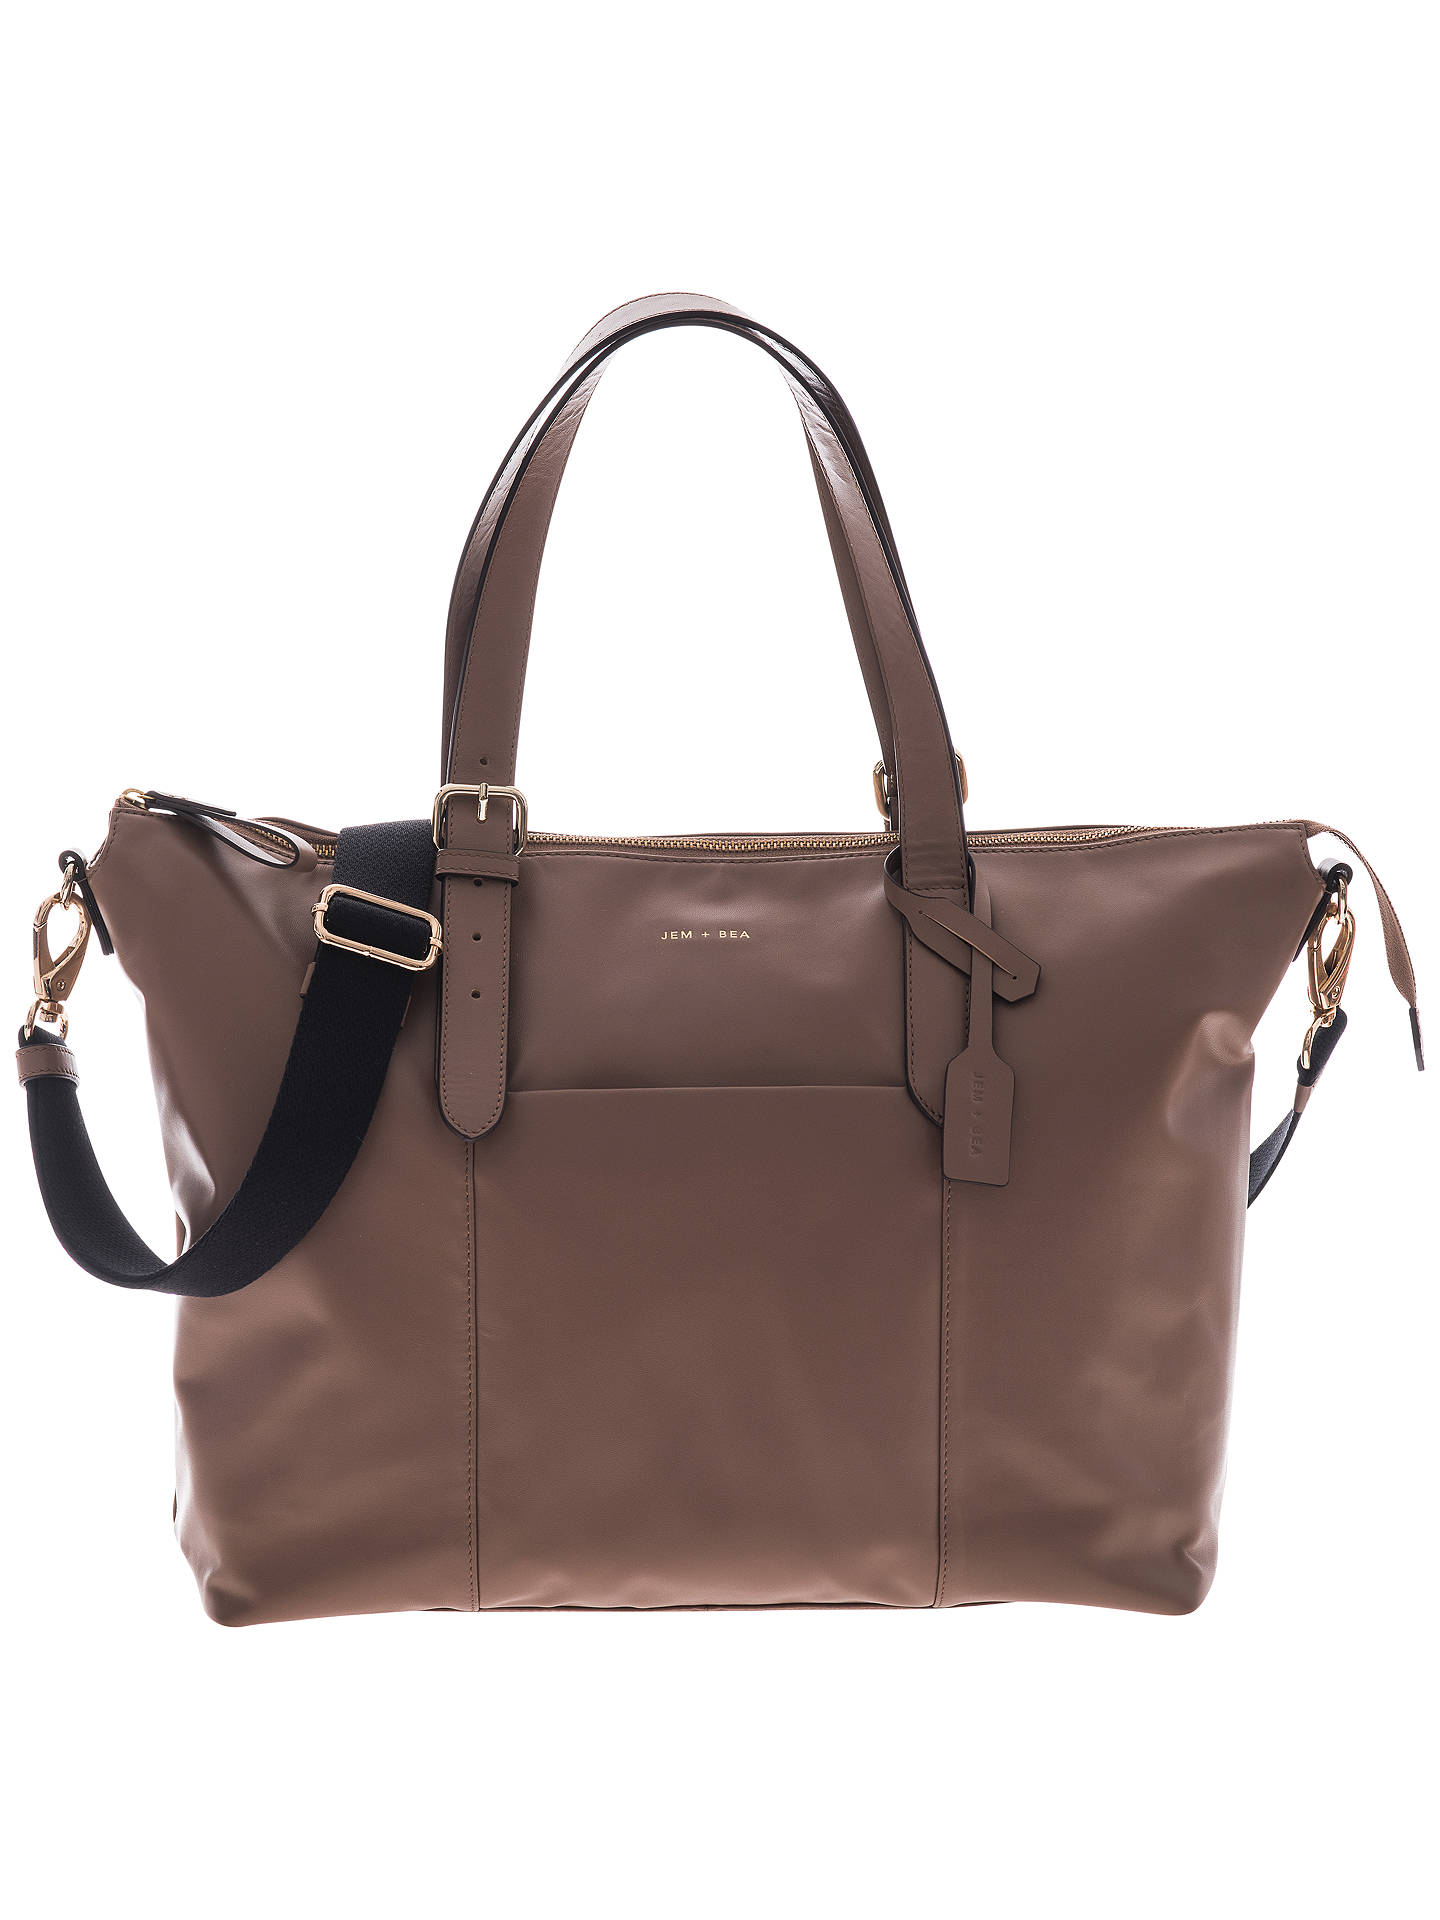 BuyJEM + BEA Beatrice Tote Changing Bag, Taupe Online at johnlewis.com